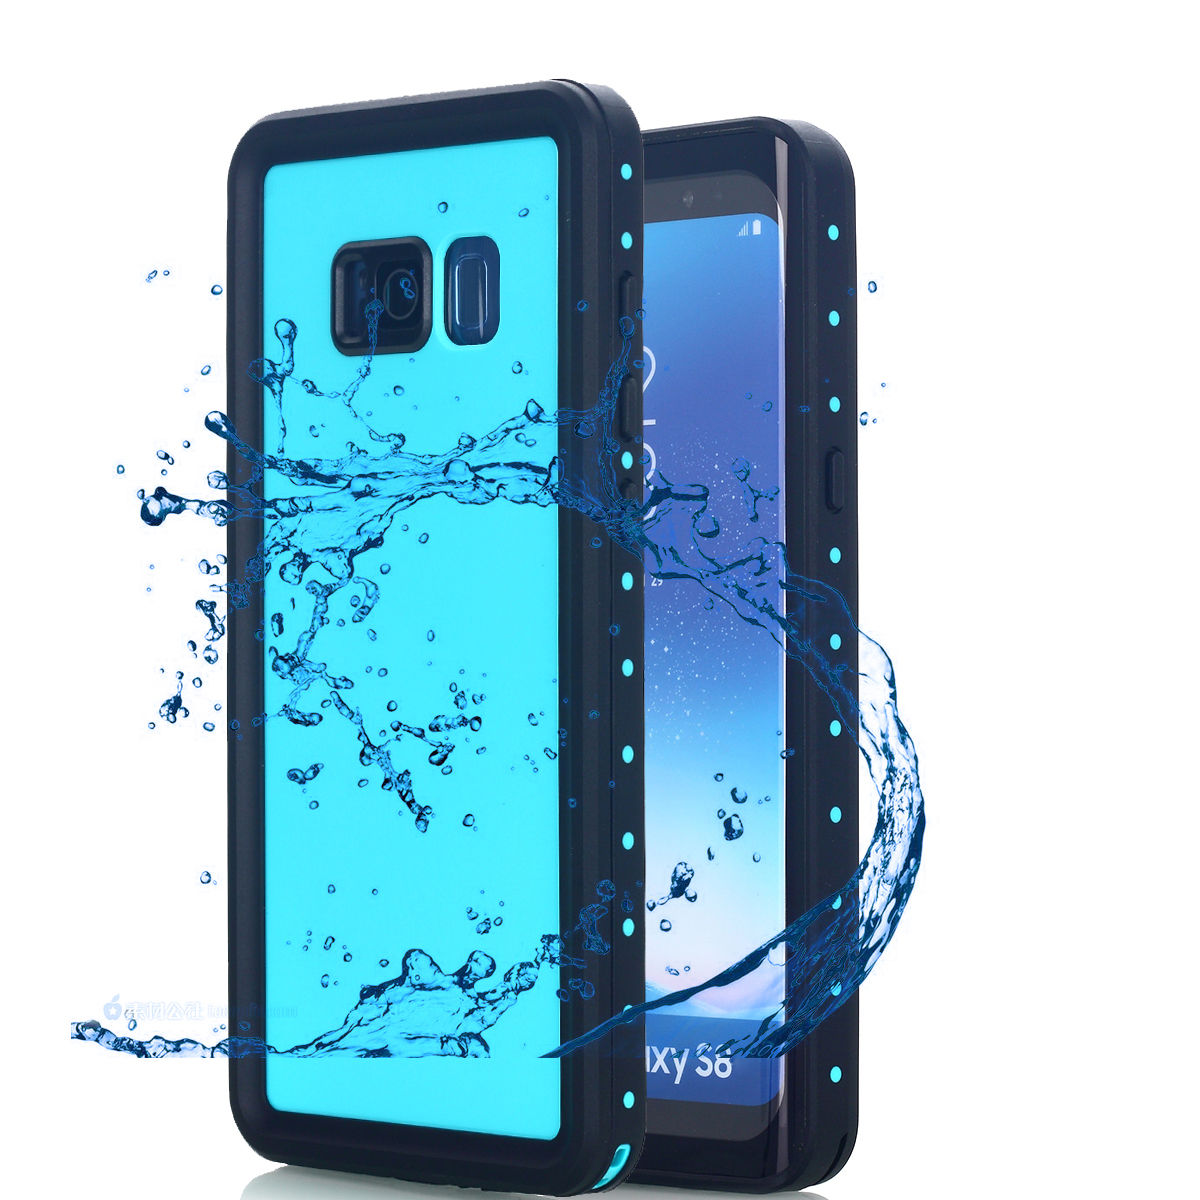 los angeles 24289 28a8c Samsung Galaxy S8 Plus IP68 Waterproof Case,Alcase 9.8ft Underwater  Shockproof Heavy Duty Dirtproof Full Sealed Case Cover for Samsung Galaxy  S8 Plus ...